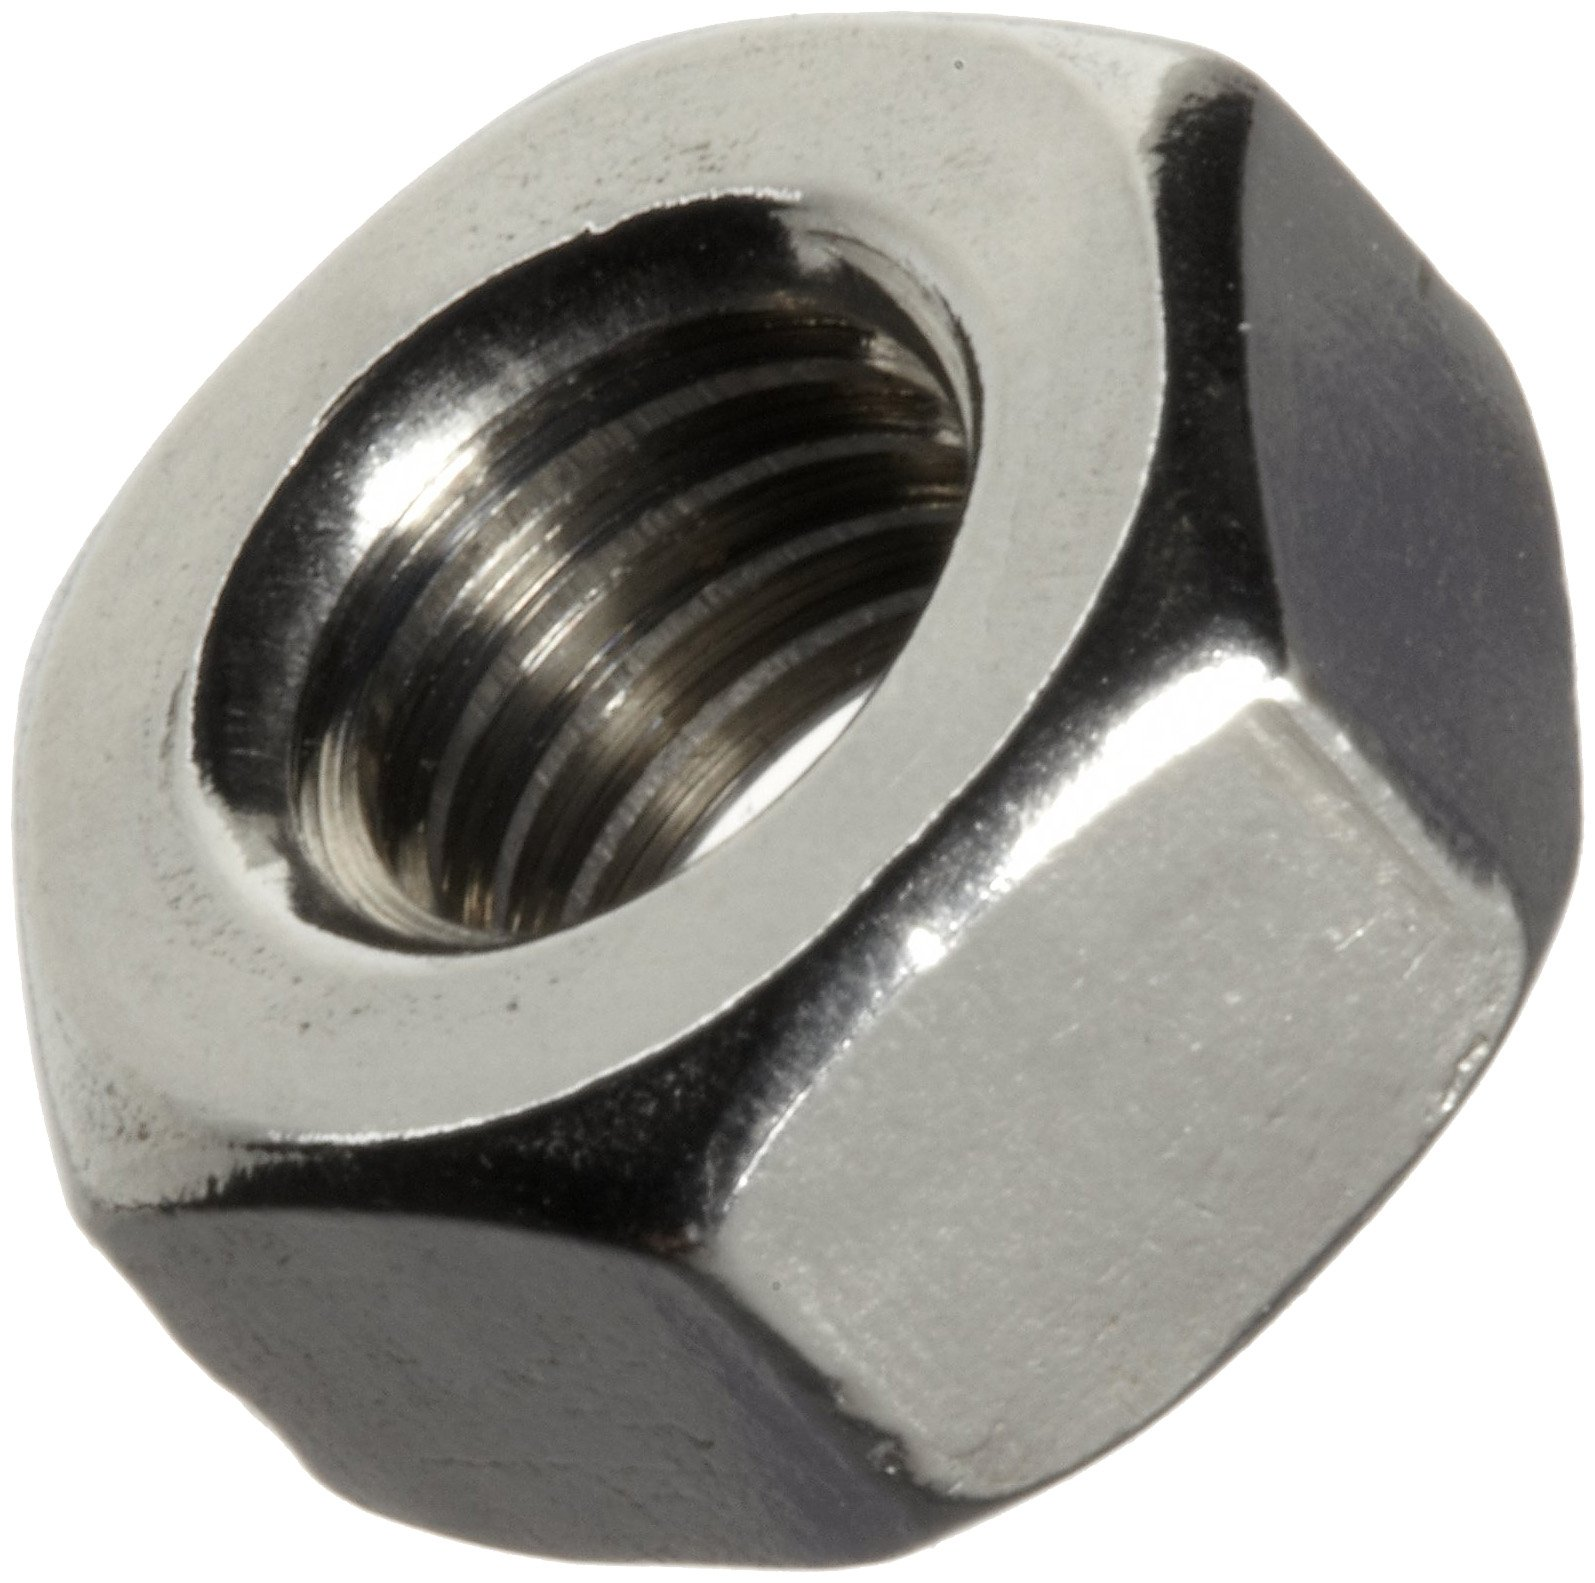 ASME B18.6.3 Plain 18-8 Stainless Steel Machine Screw Hex Nut, #8-32 Thread Size, 1/8'' Width Across Flats, 11/32'' Thick (Pack of 100)